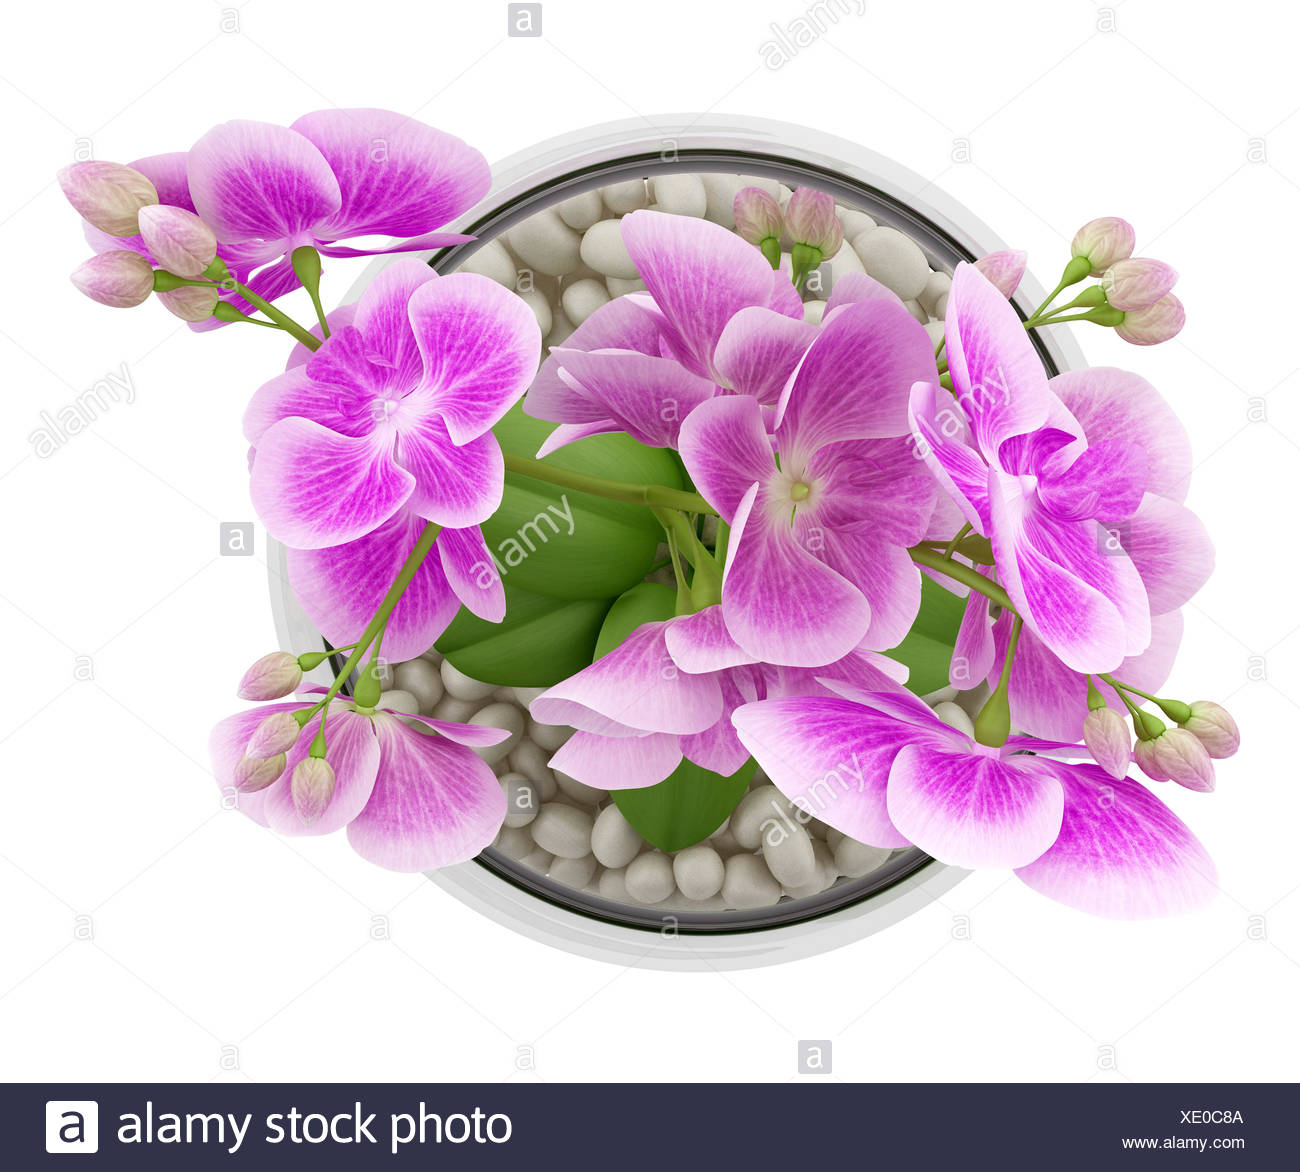 Top View Of Purple Orchid Flower In Glass Vase Stock Photo